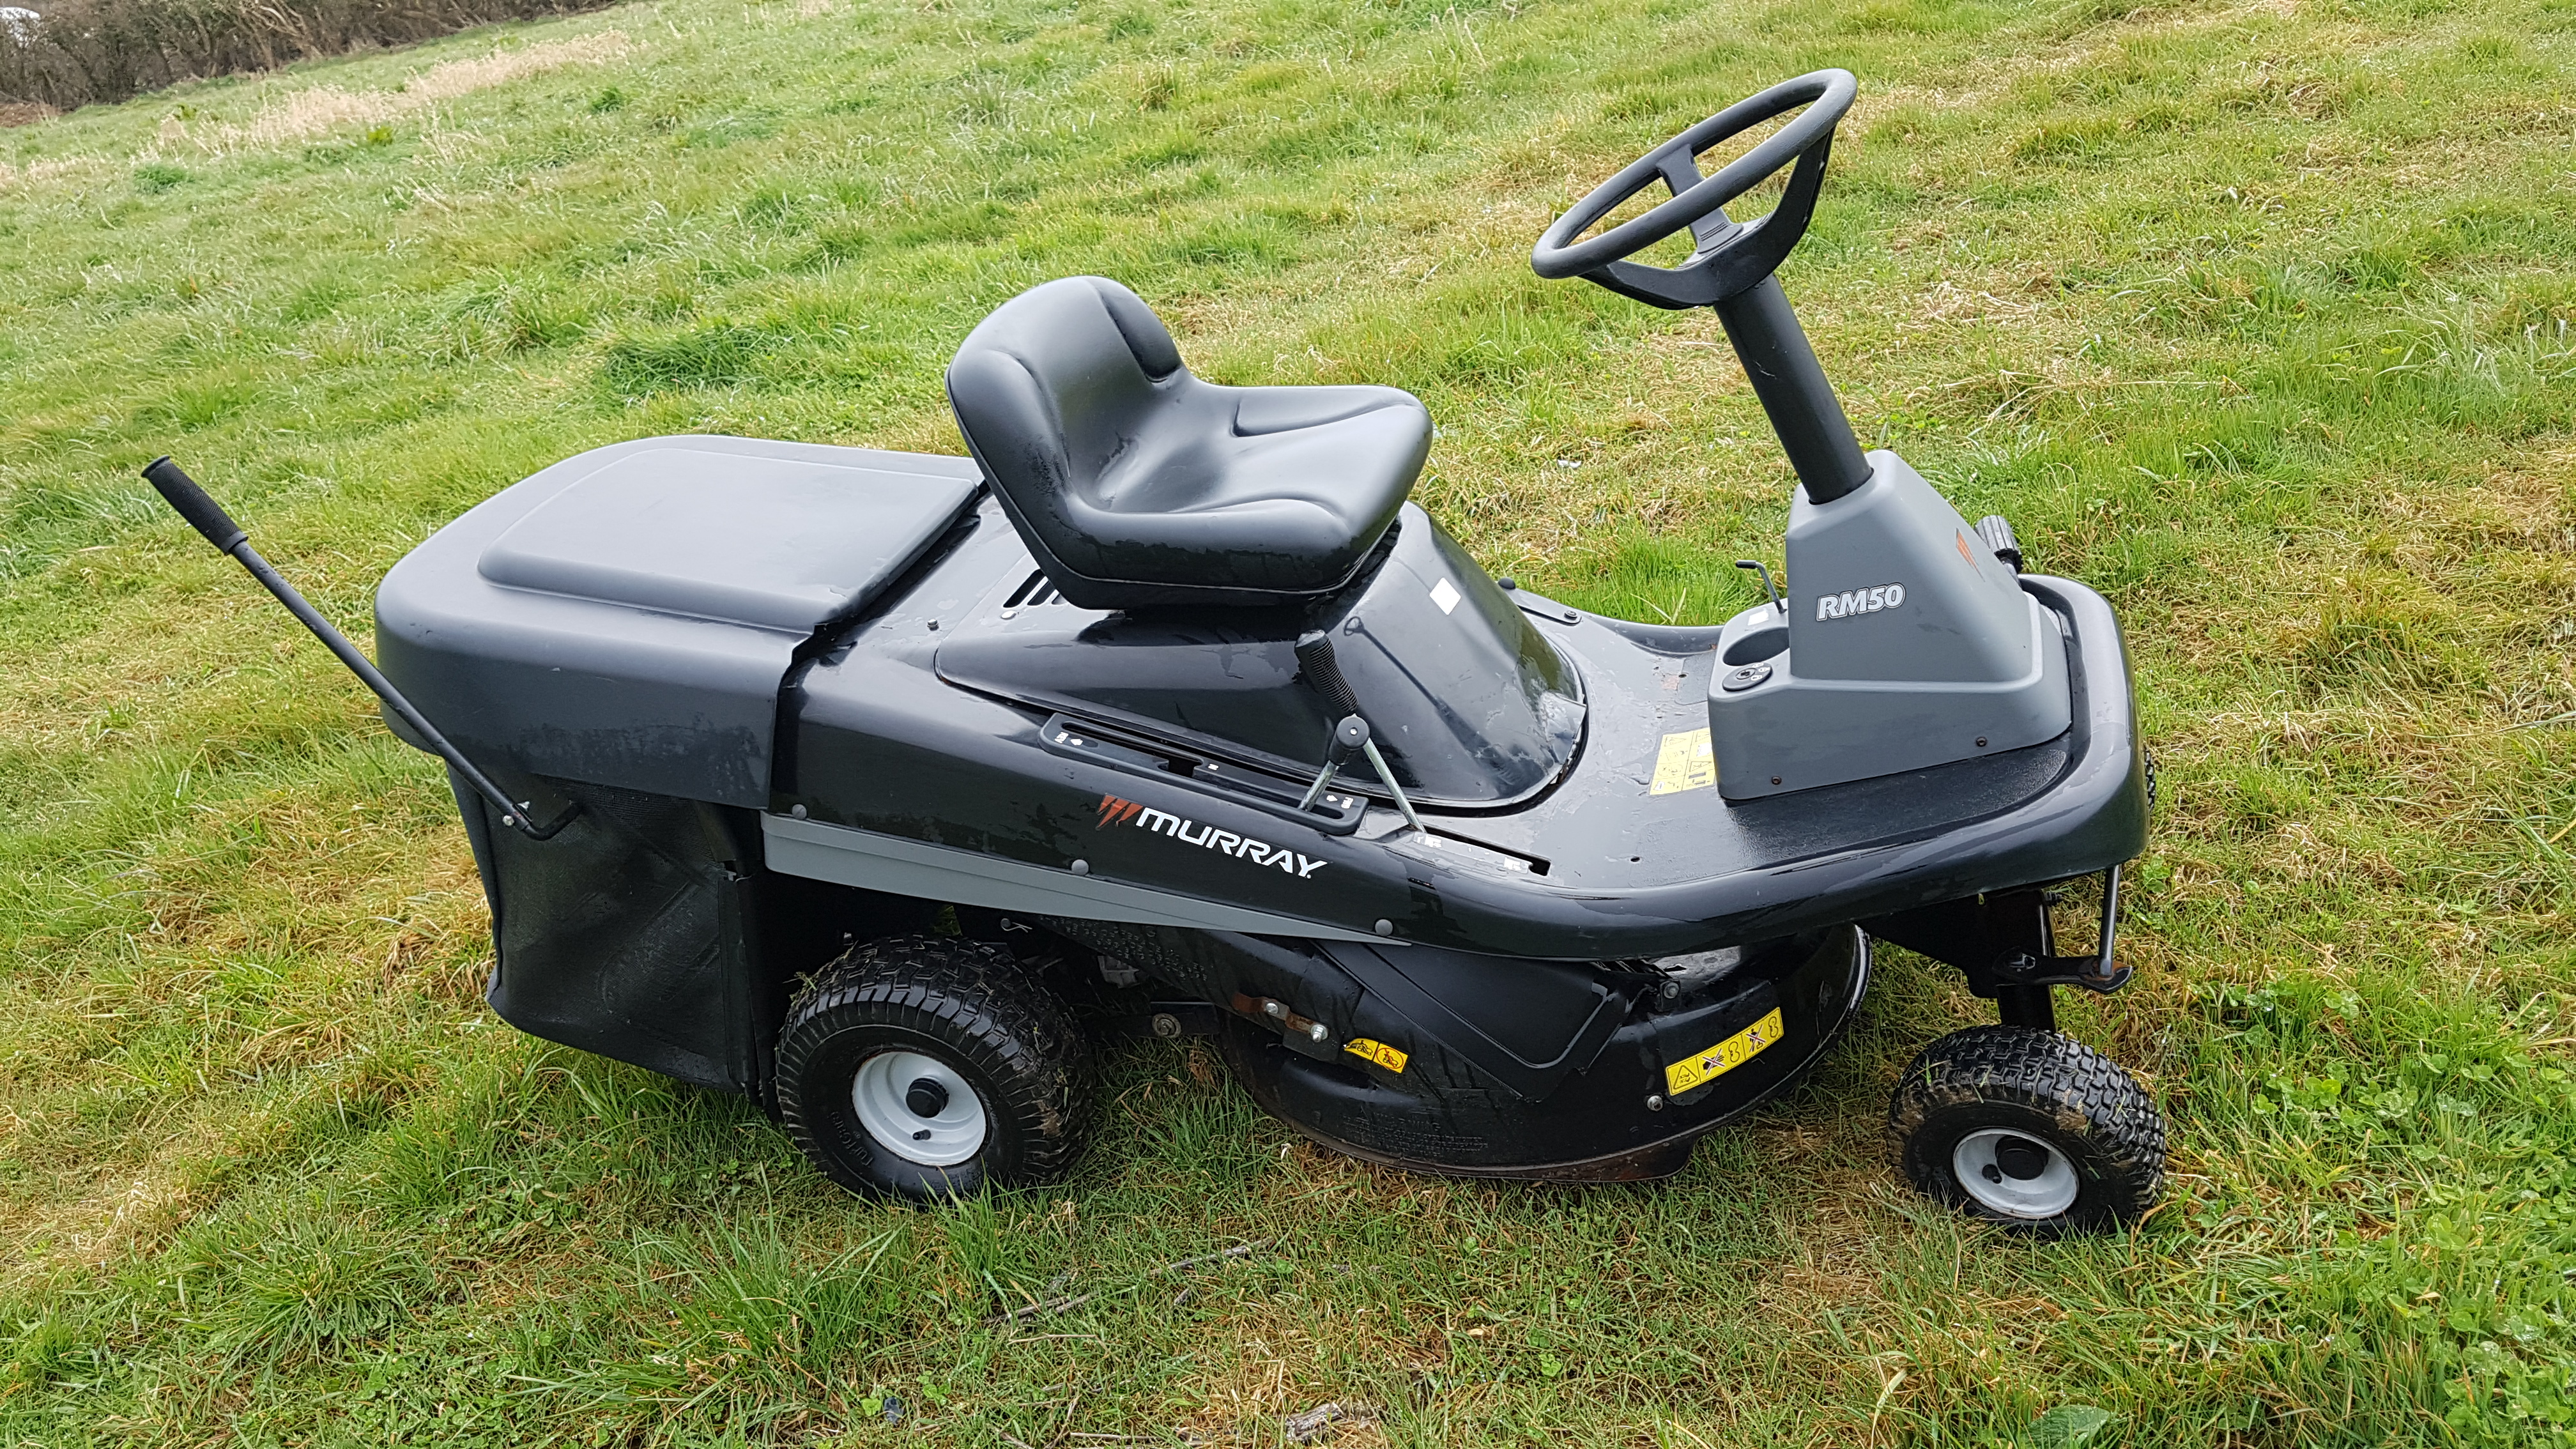 Murray RM50 Petrol Ride-On Mower